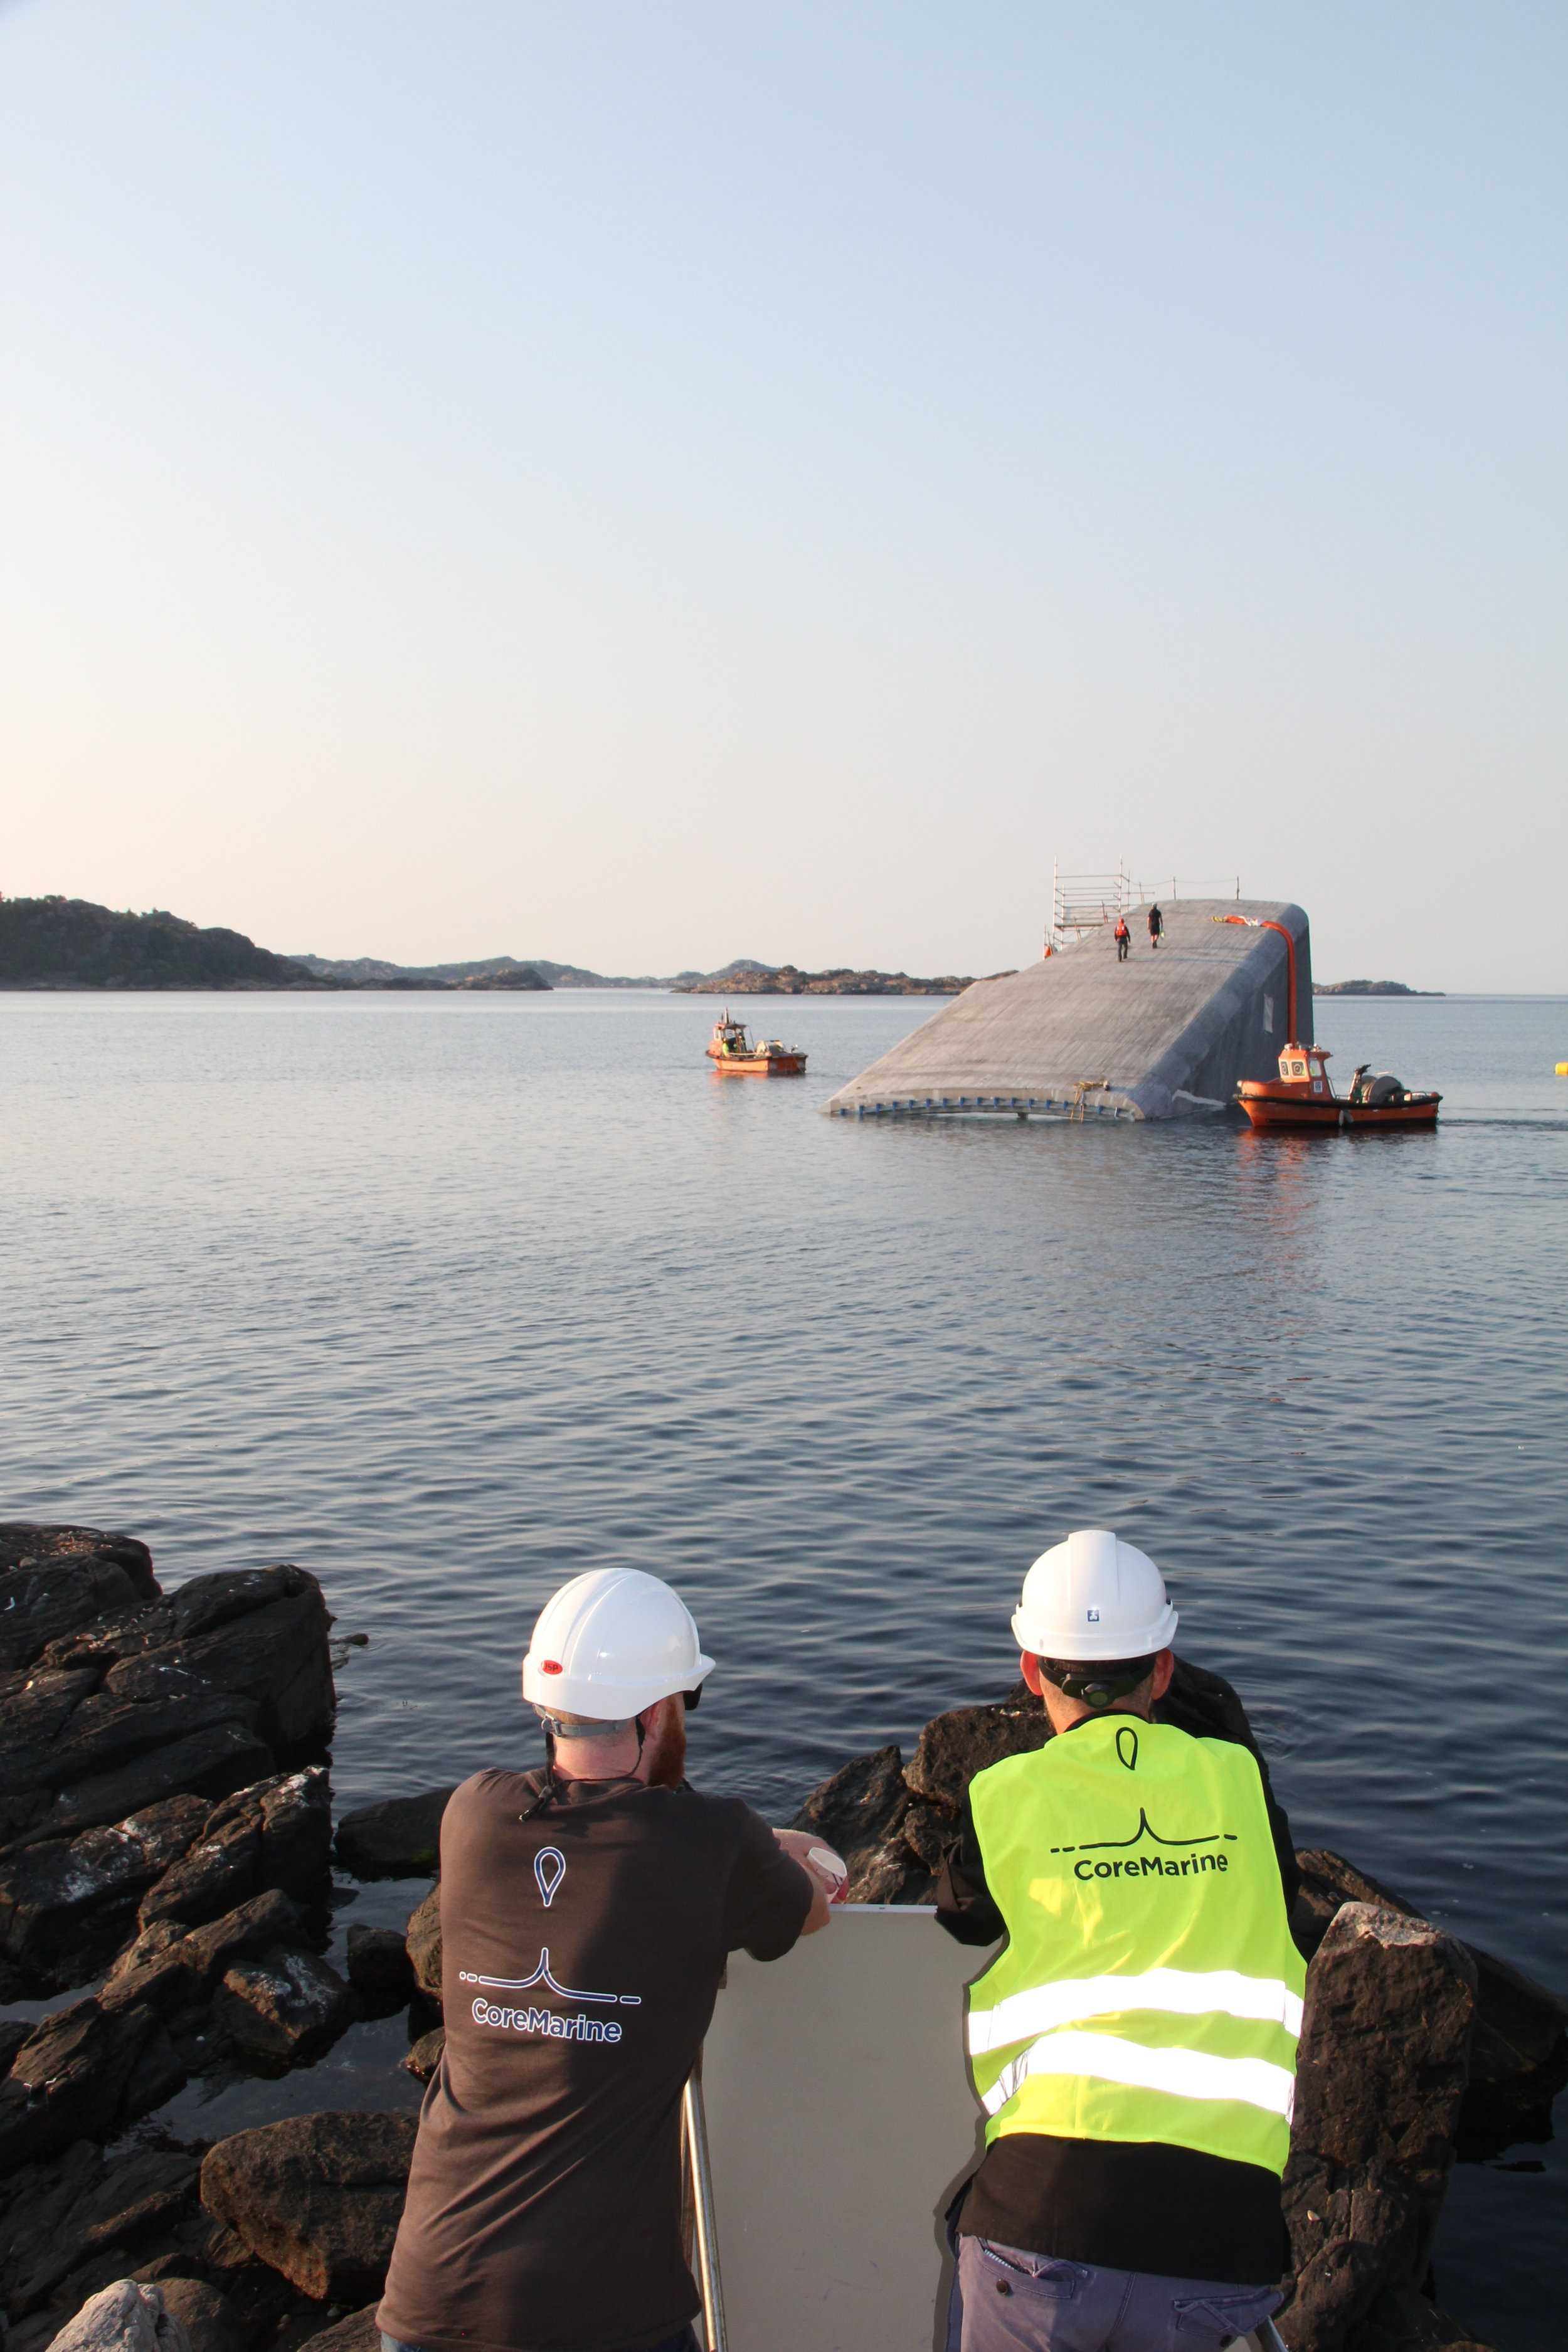 Ben Fitzgerald (Operations Director) and Sean Van Steel (Engineering Manager) observing the free floating Under structure at dawn